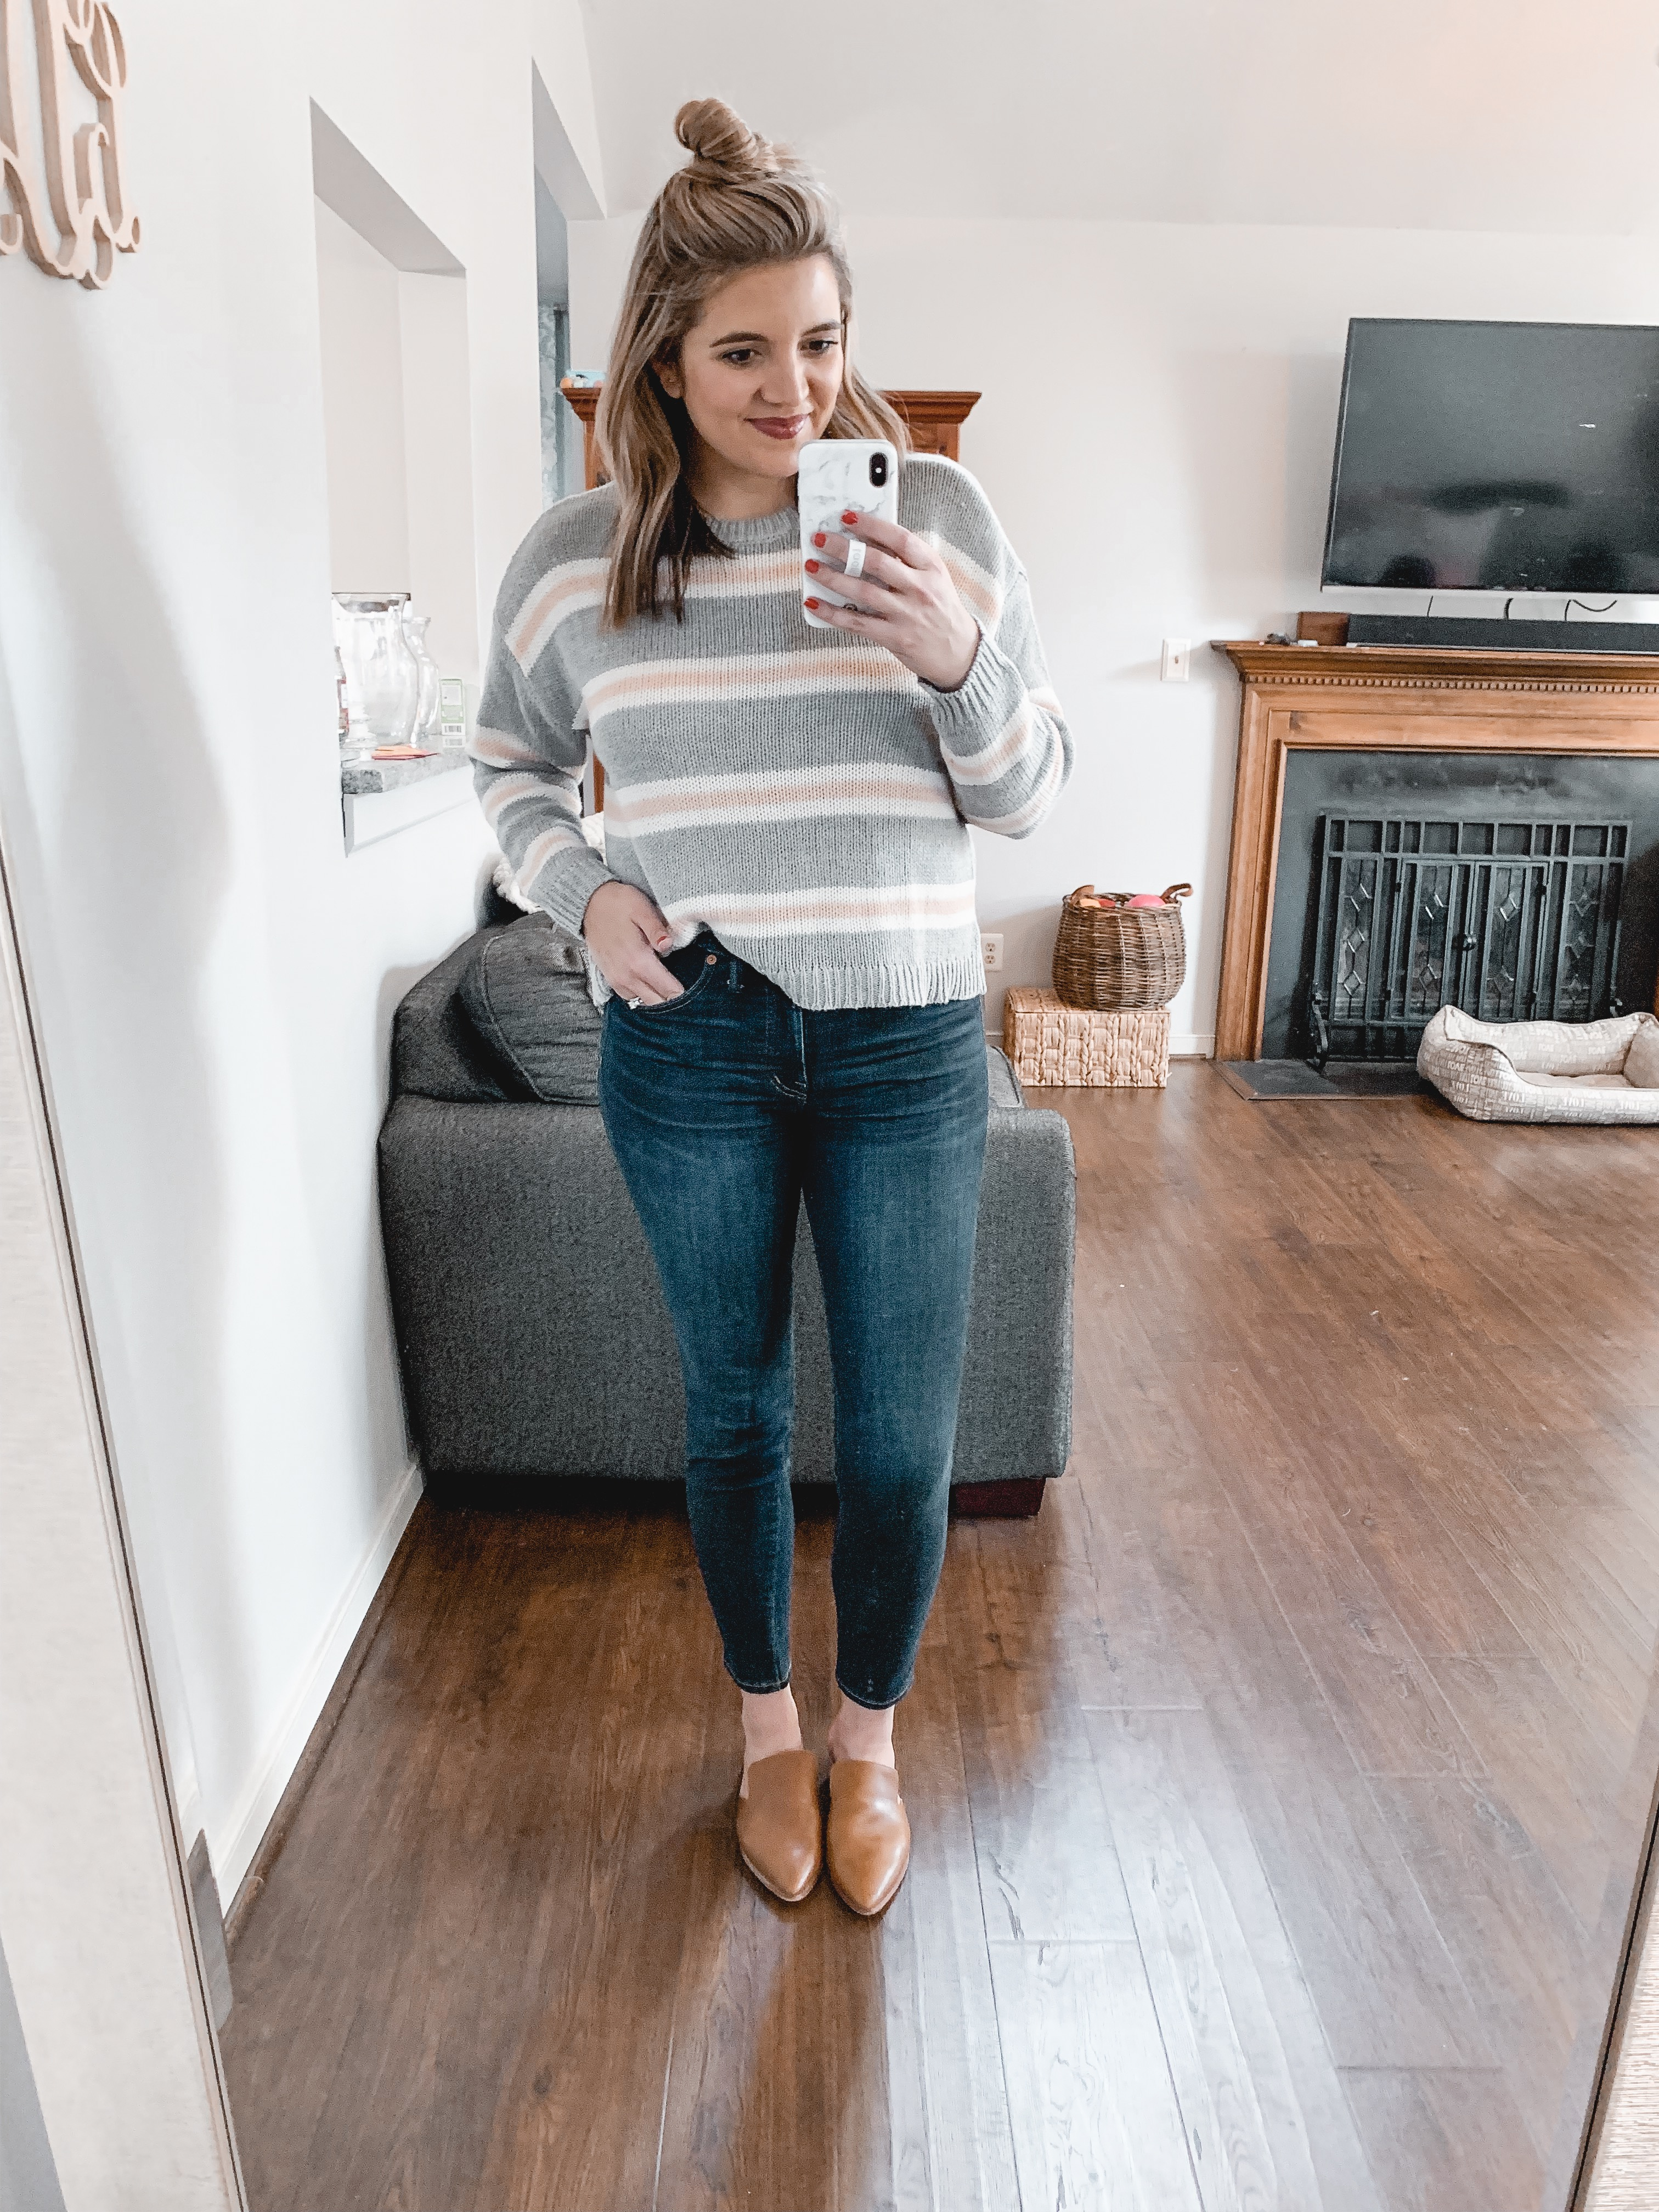 Affordable style blogger, Lauren Dix shares a January American Eagle try on session with over ten winter outfits!